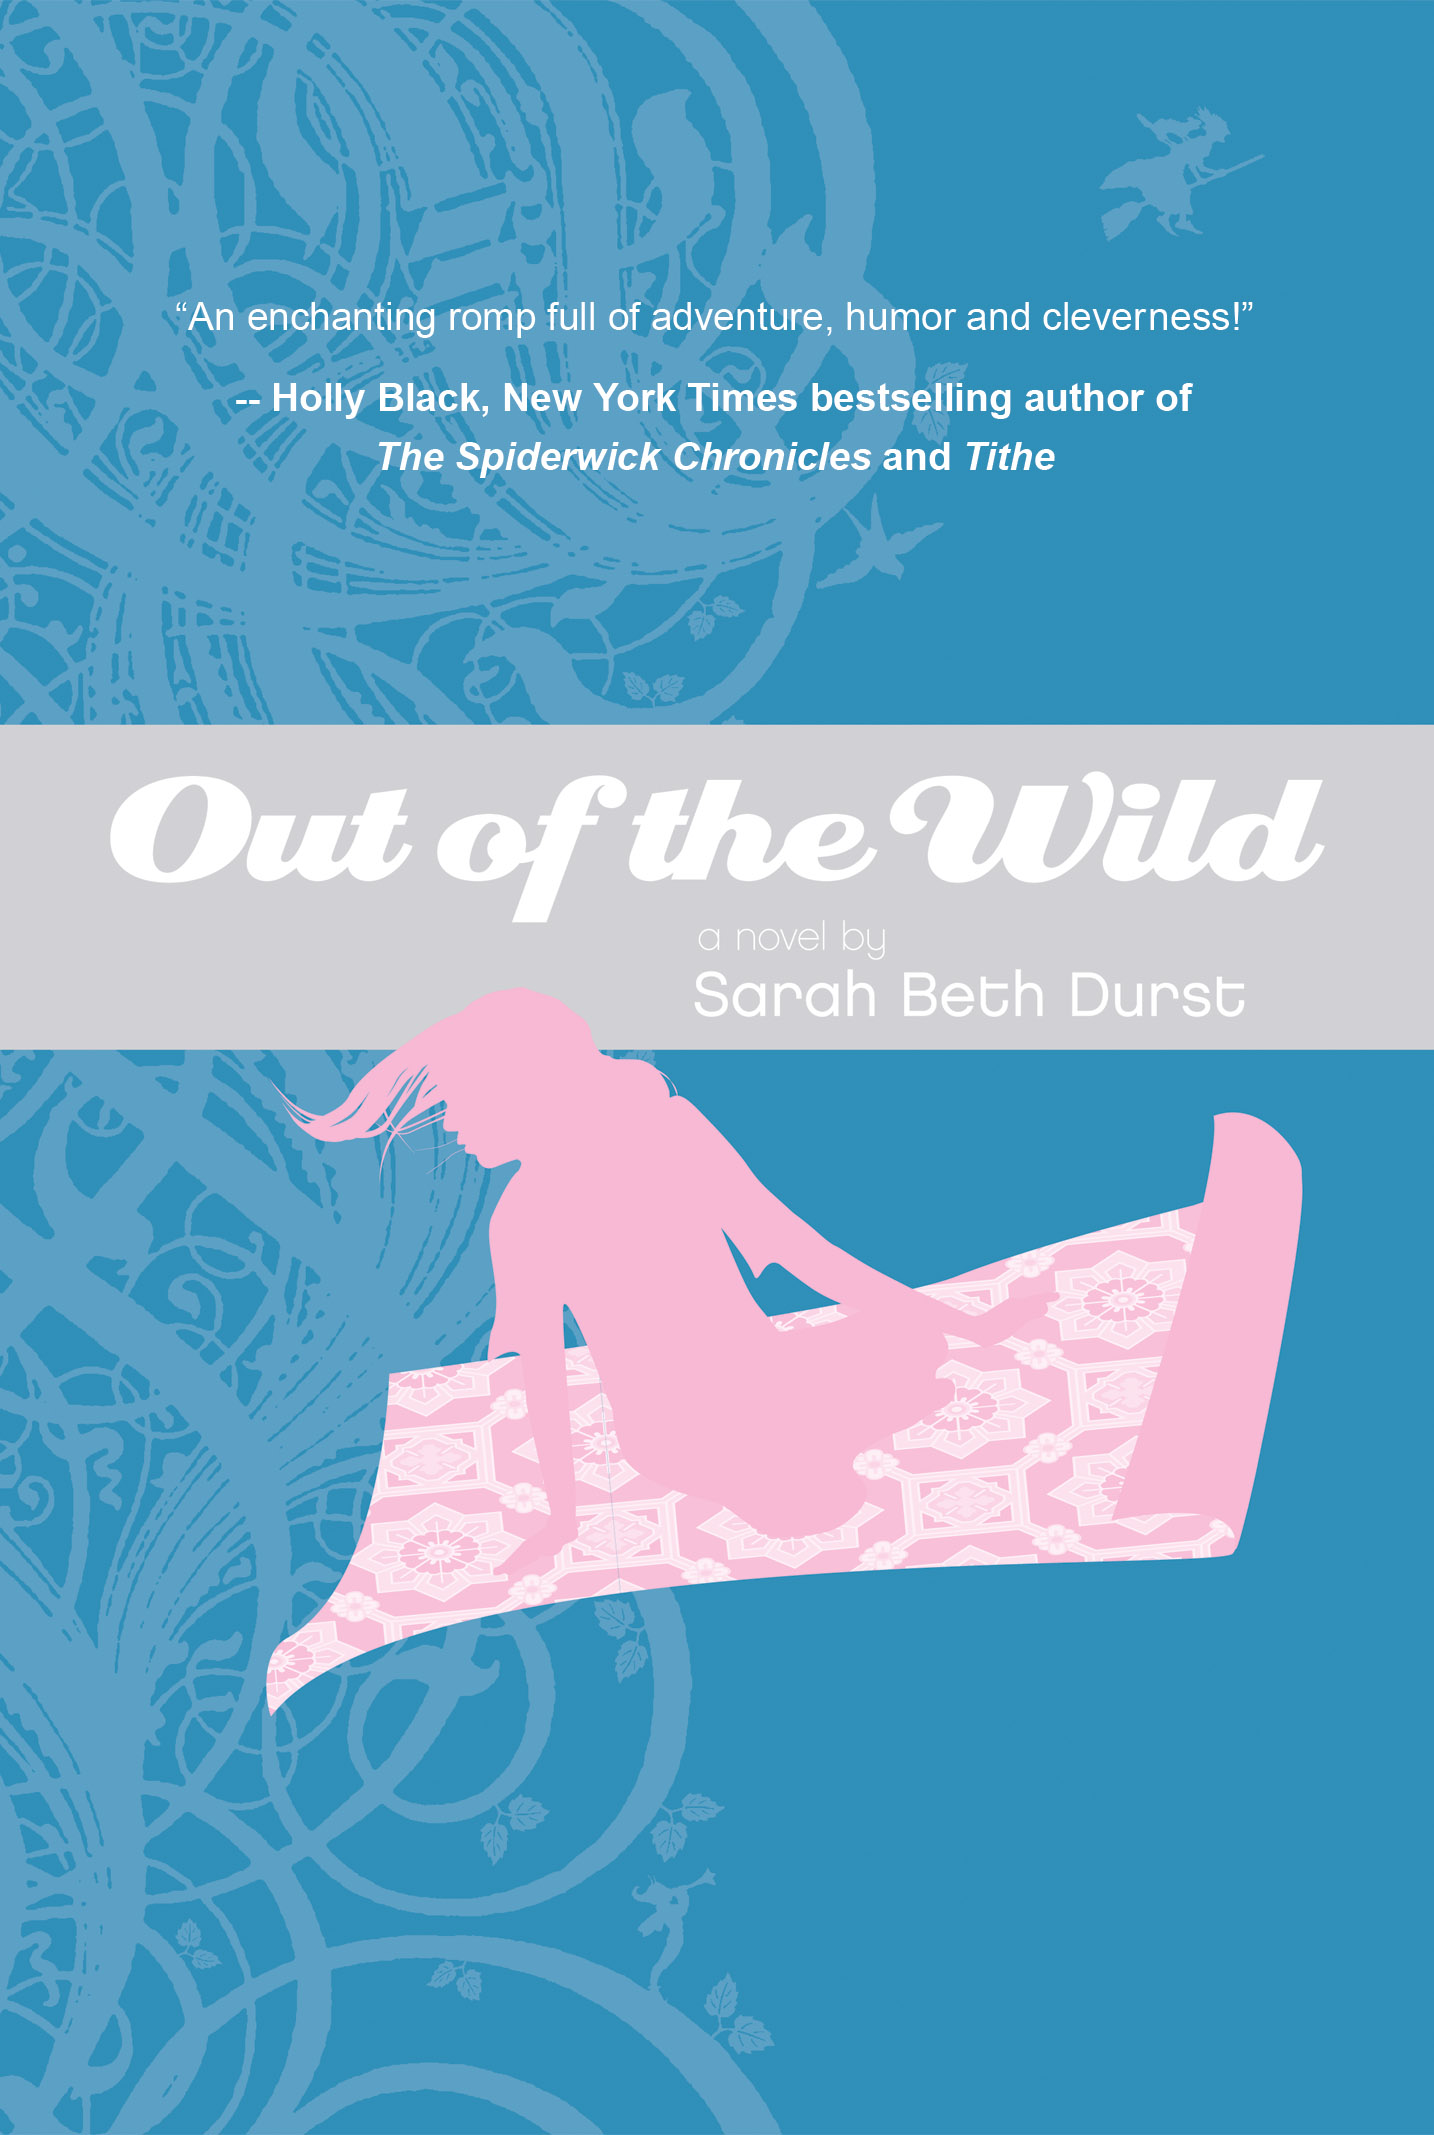 Out of the Wild , by Sarah Beth Durst